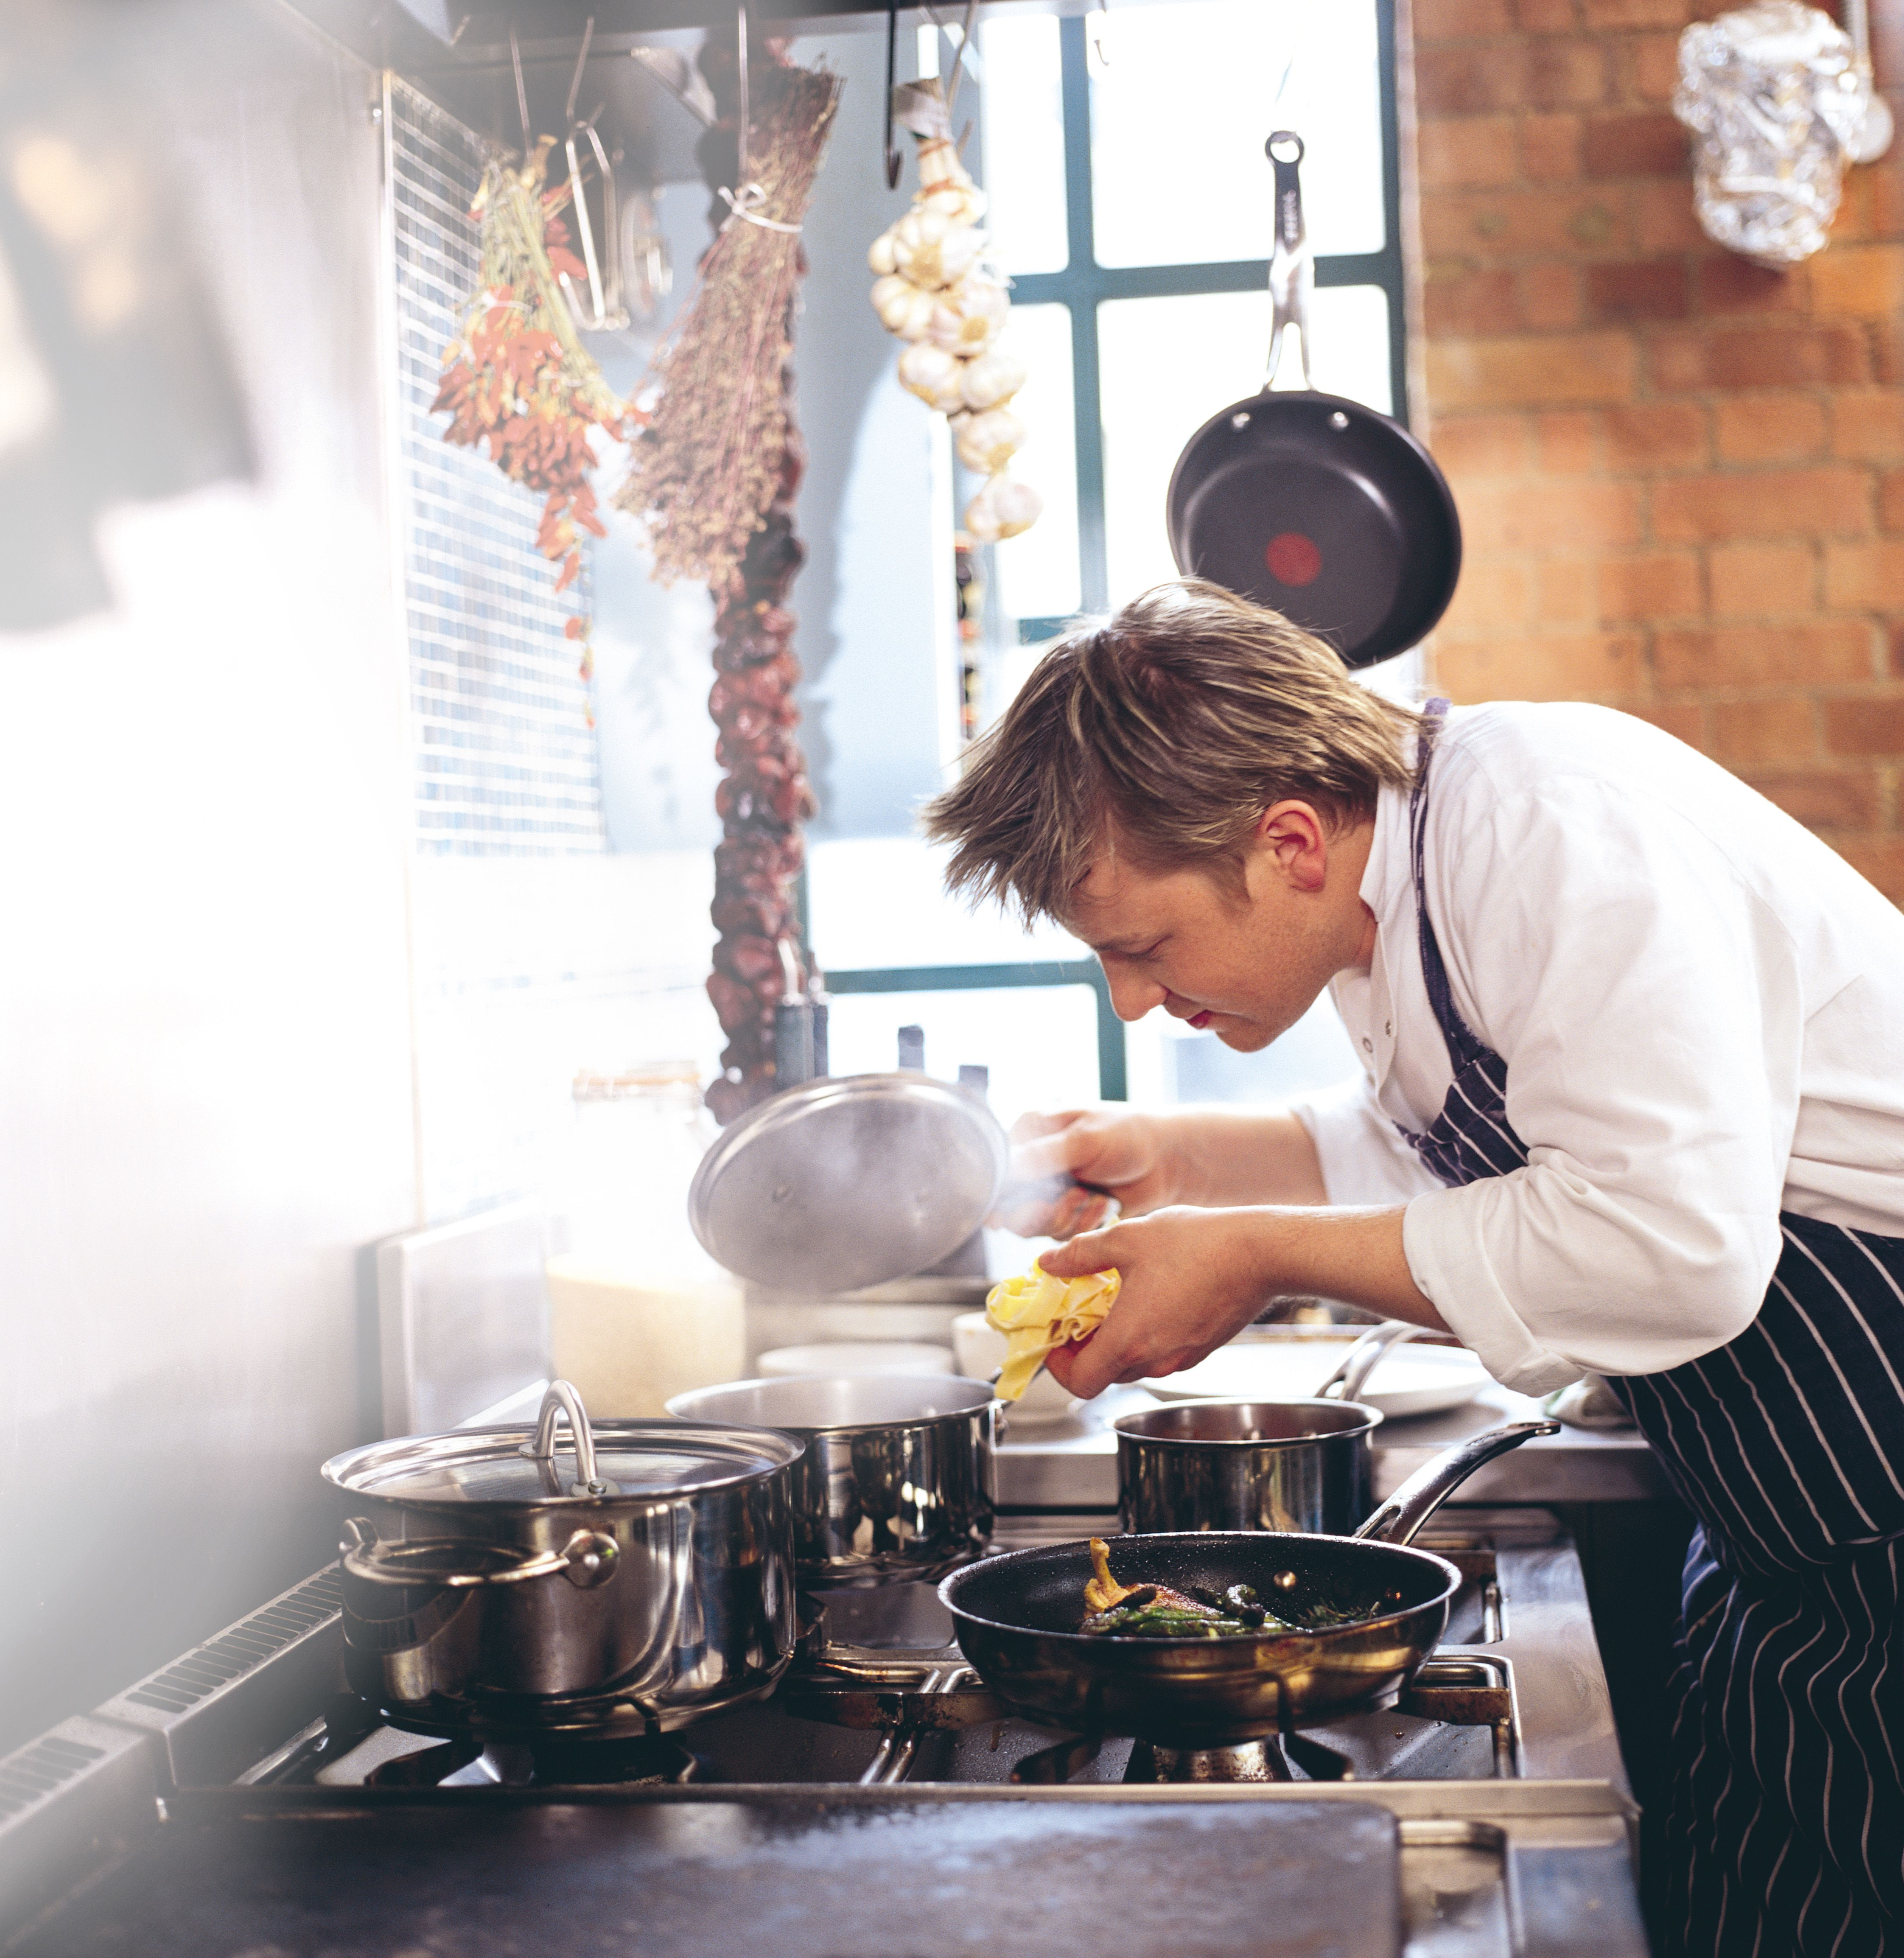 Jamie Oliver restaurant - best time out | Midweek Lunch | Pinterest ...